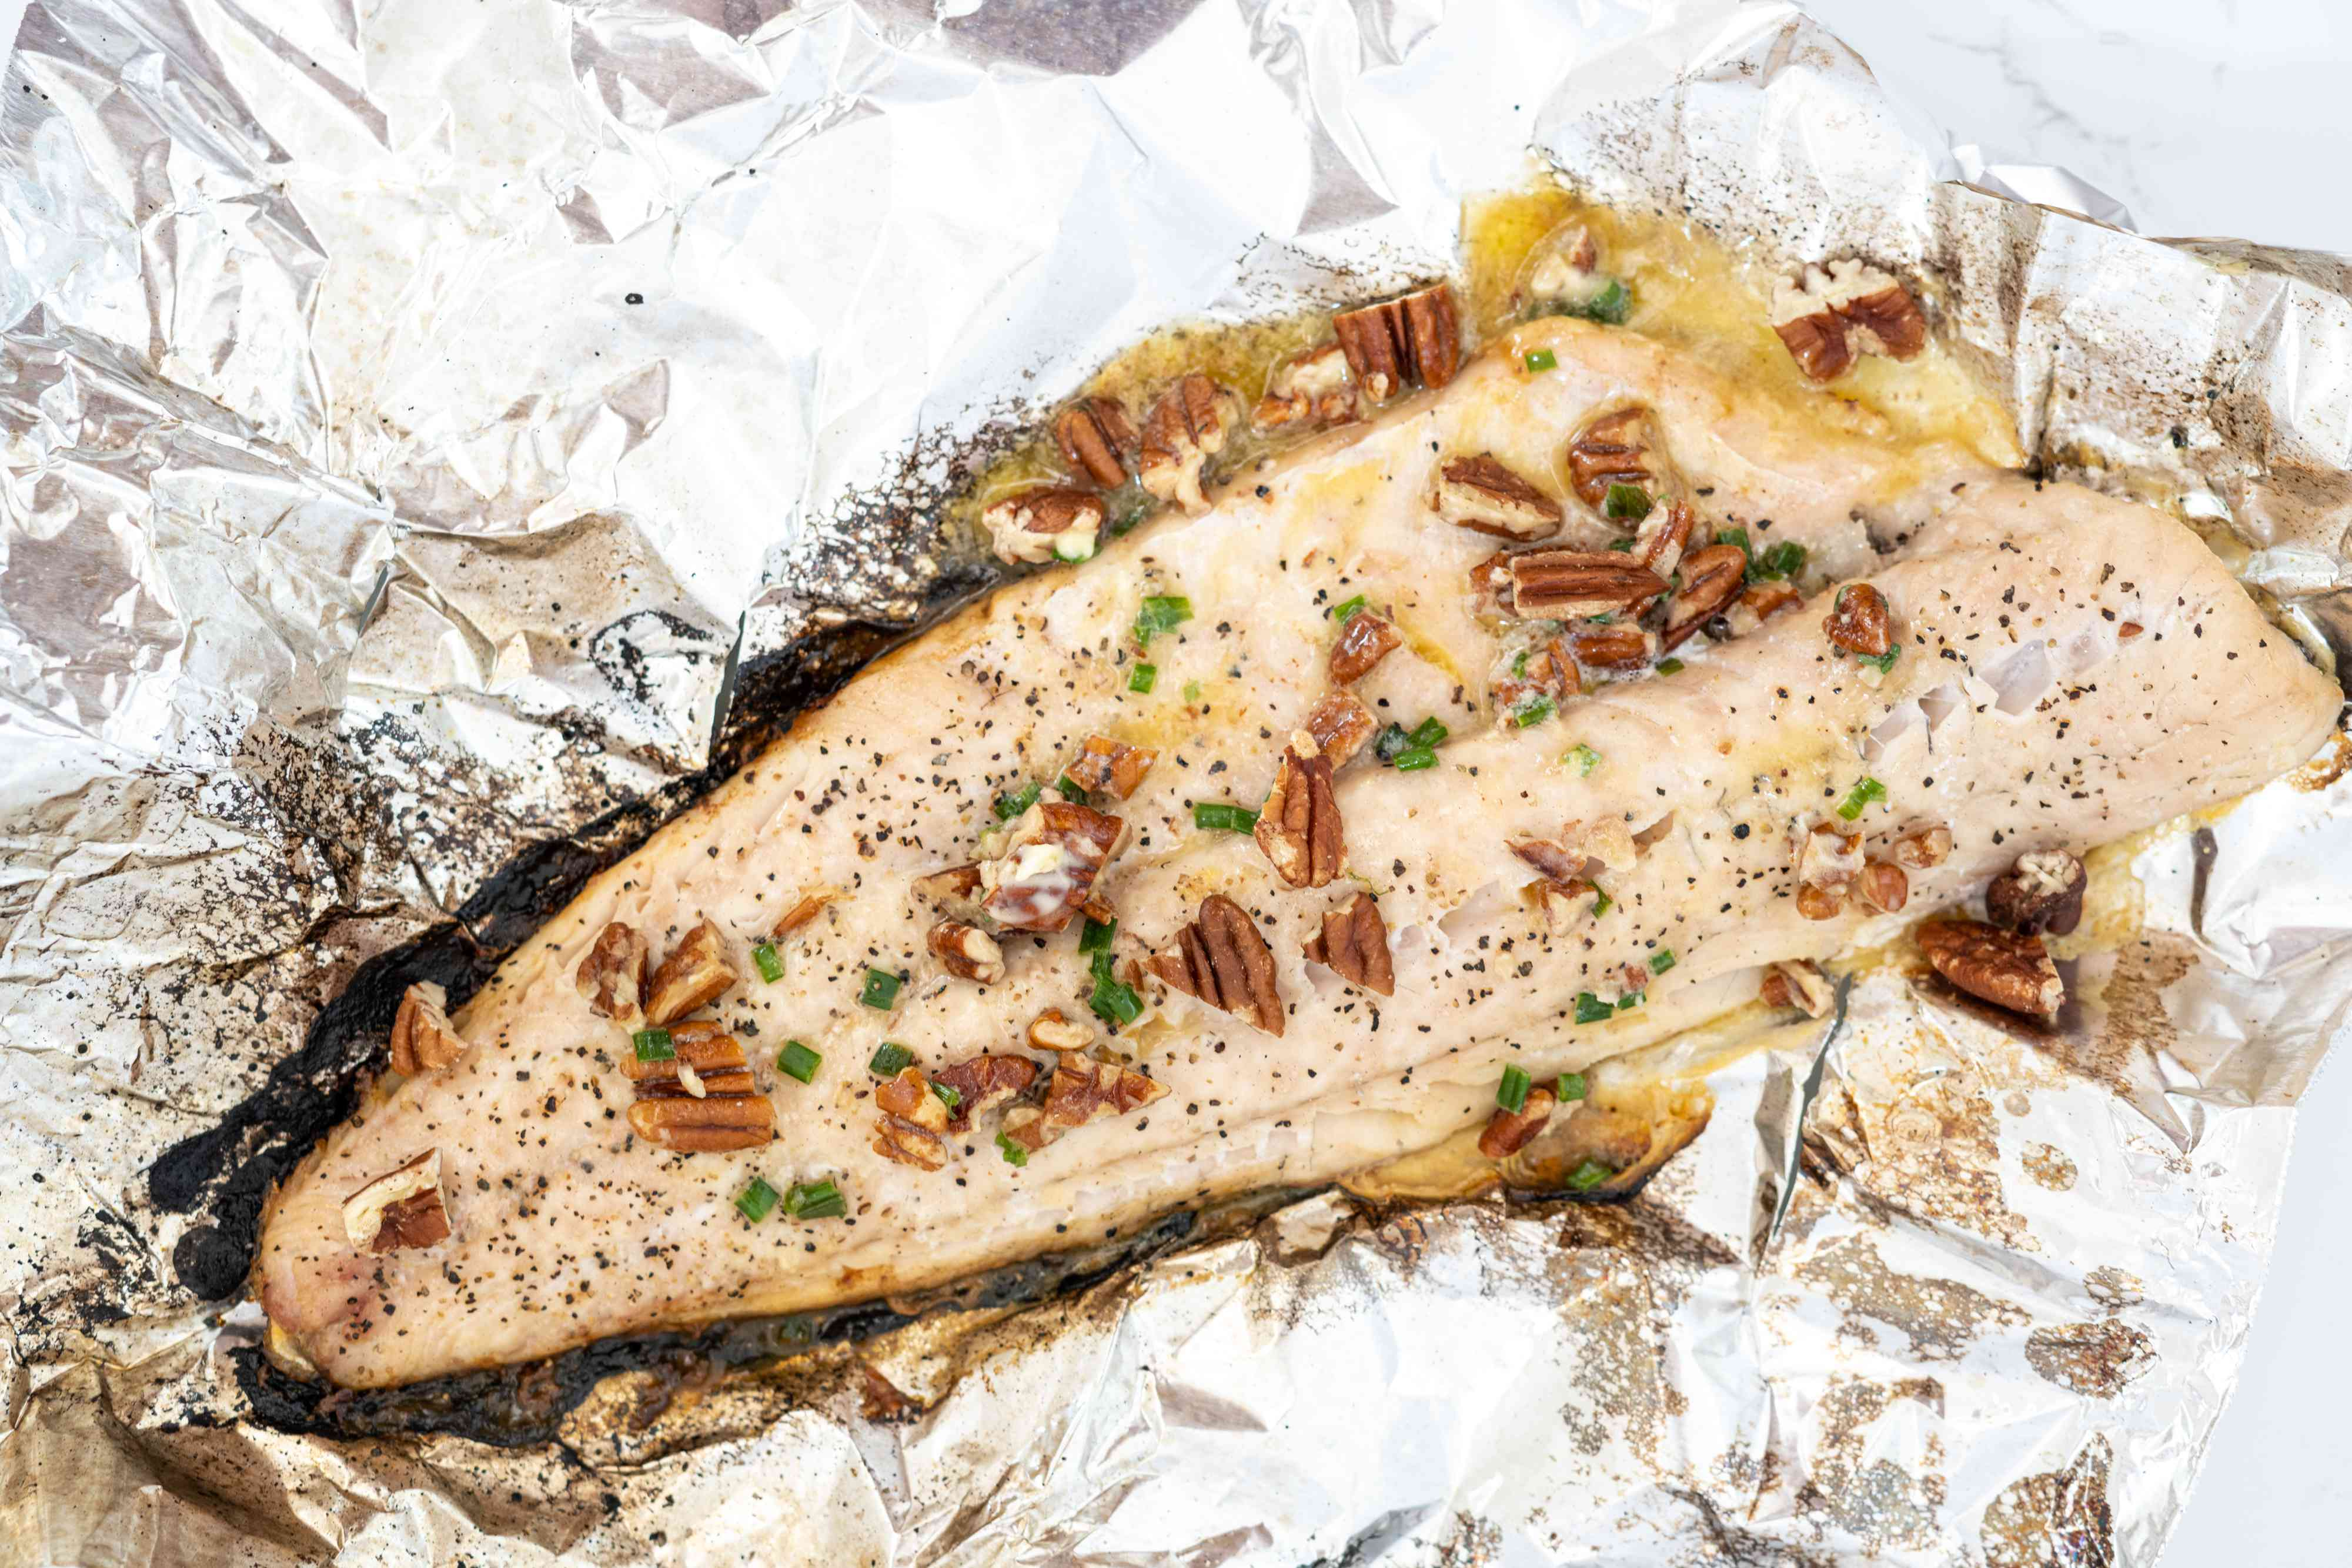 Grilled walleye with citrus butter, garnished with pecans